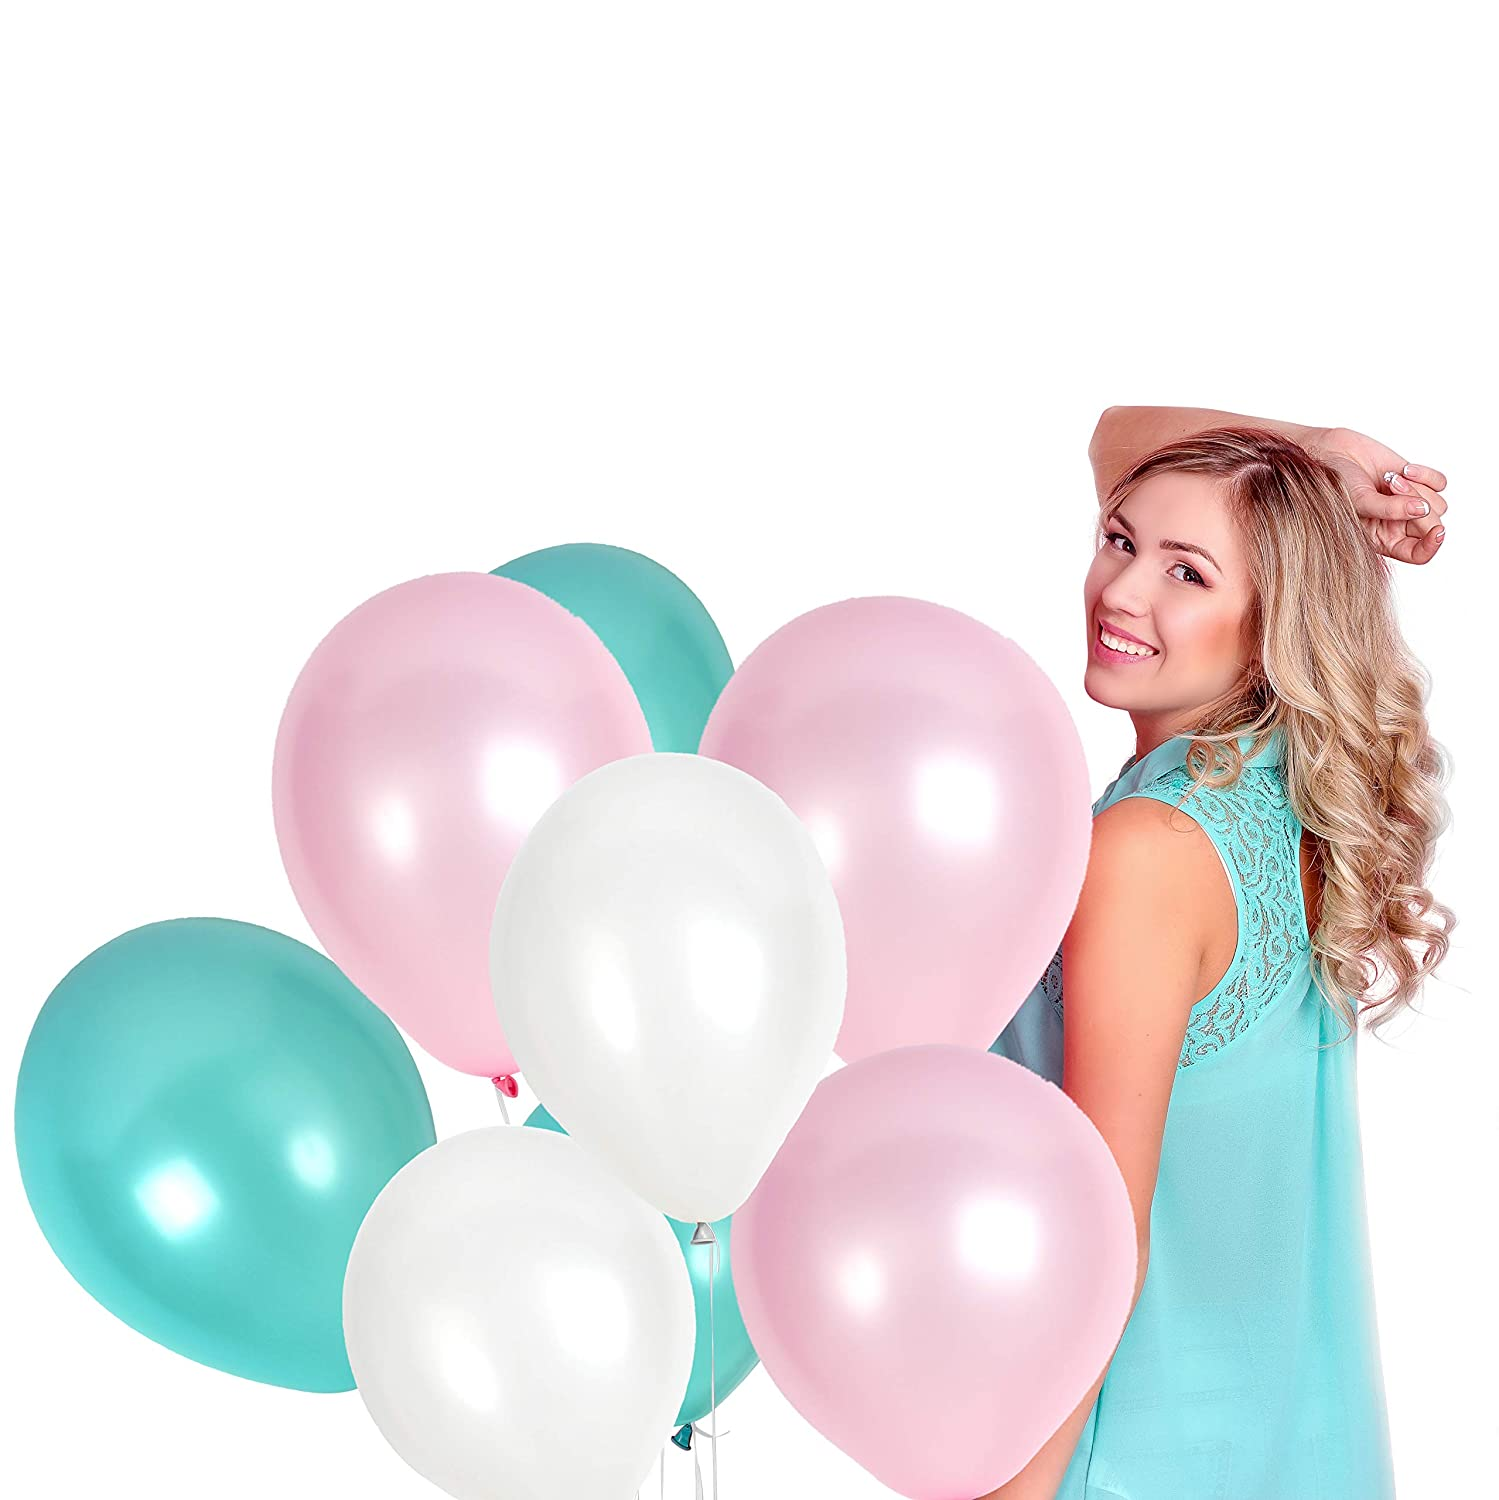 (Mint/Peach/White) - 100pcs White Assorted Latex Balloons + 65 Yards Crimped Curling Ribbon Pieces Set Top Quality Thick Party Decorations For Birthdays Anniversaries Weddings by Treasures Gifted (Mint/Peach/White)   B0757XFR5B